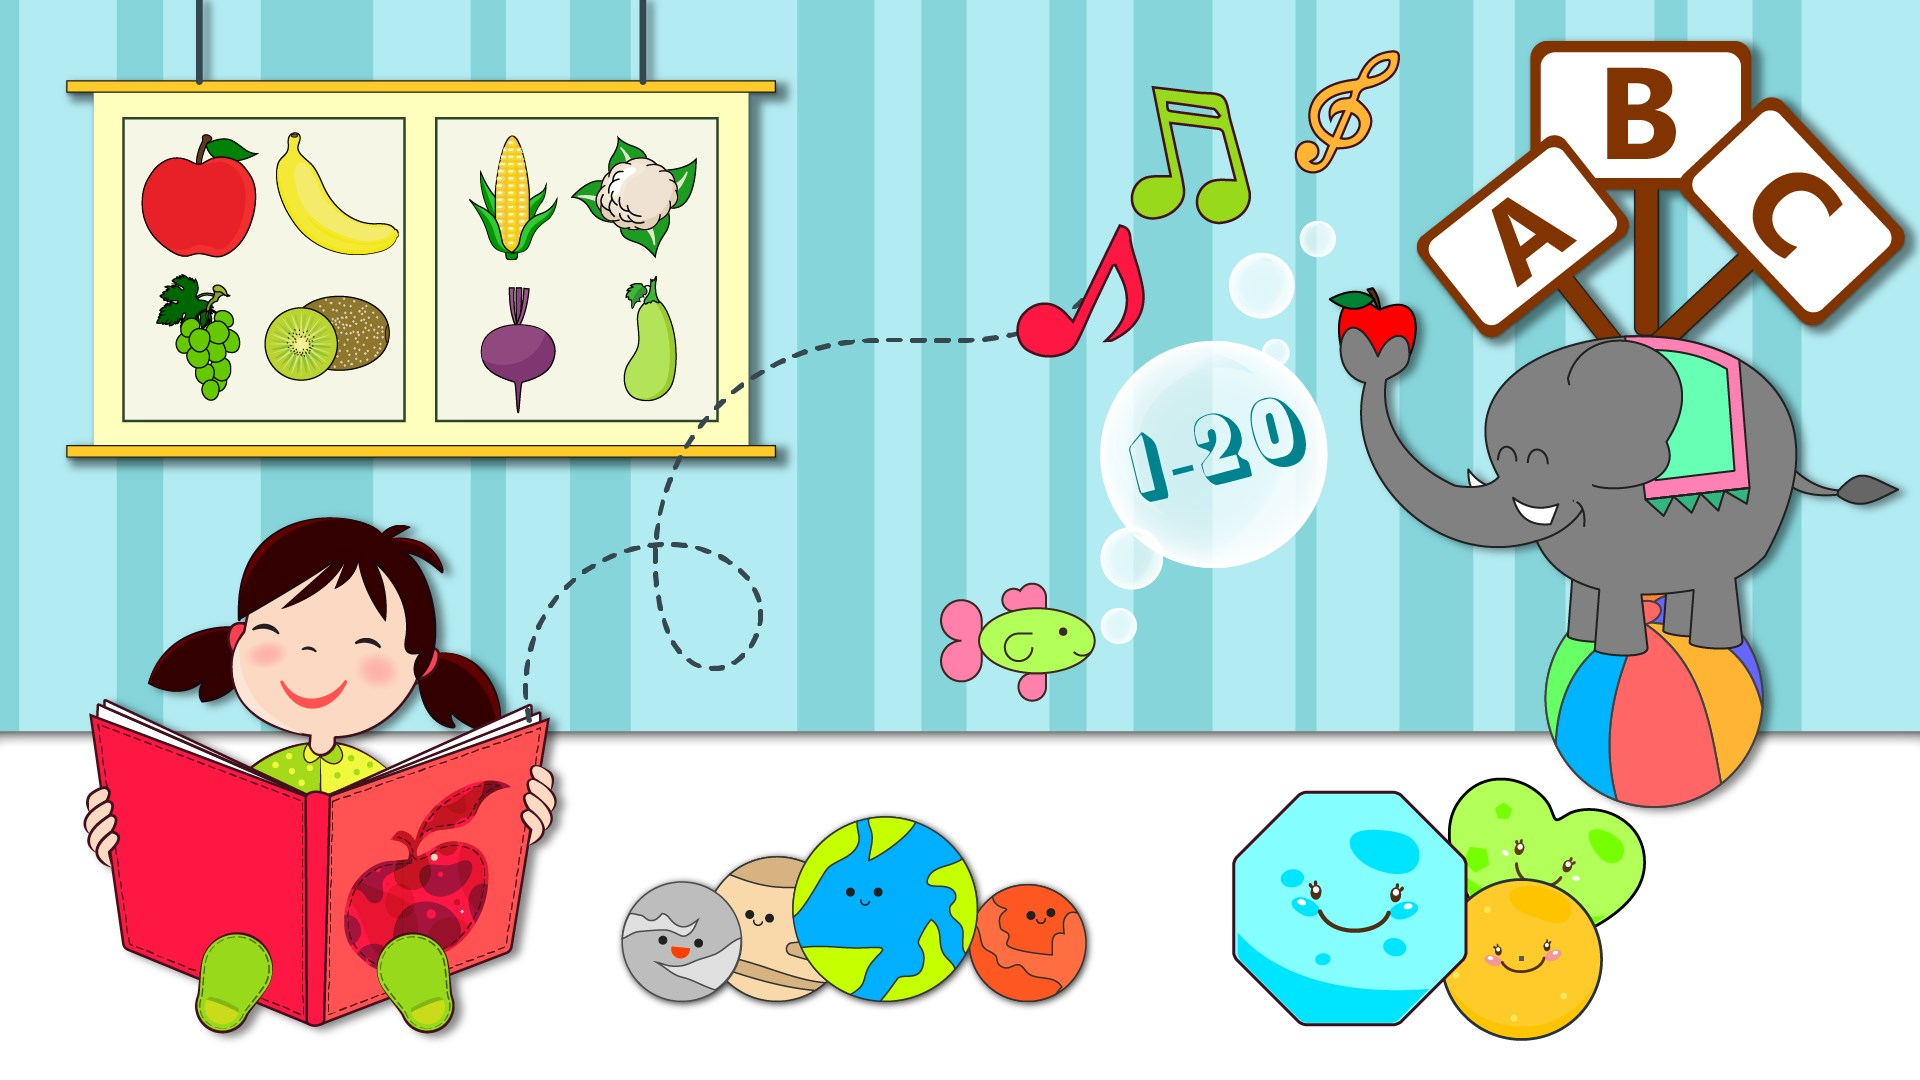 picture Nursery clipart educational game. Get kindergarten kids learning